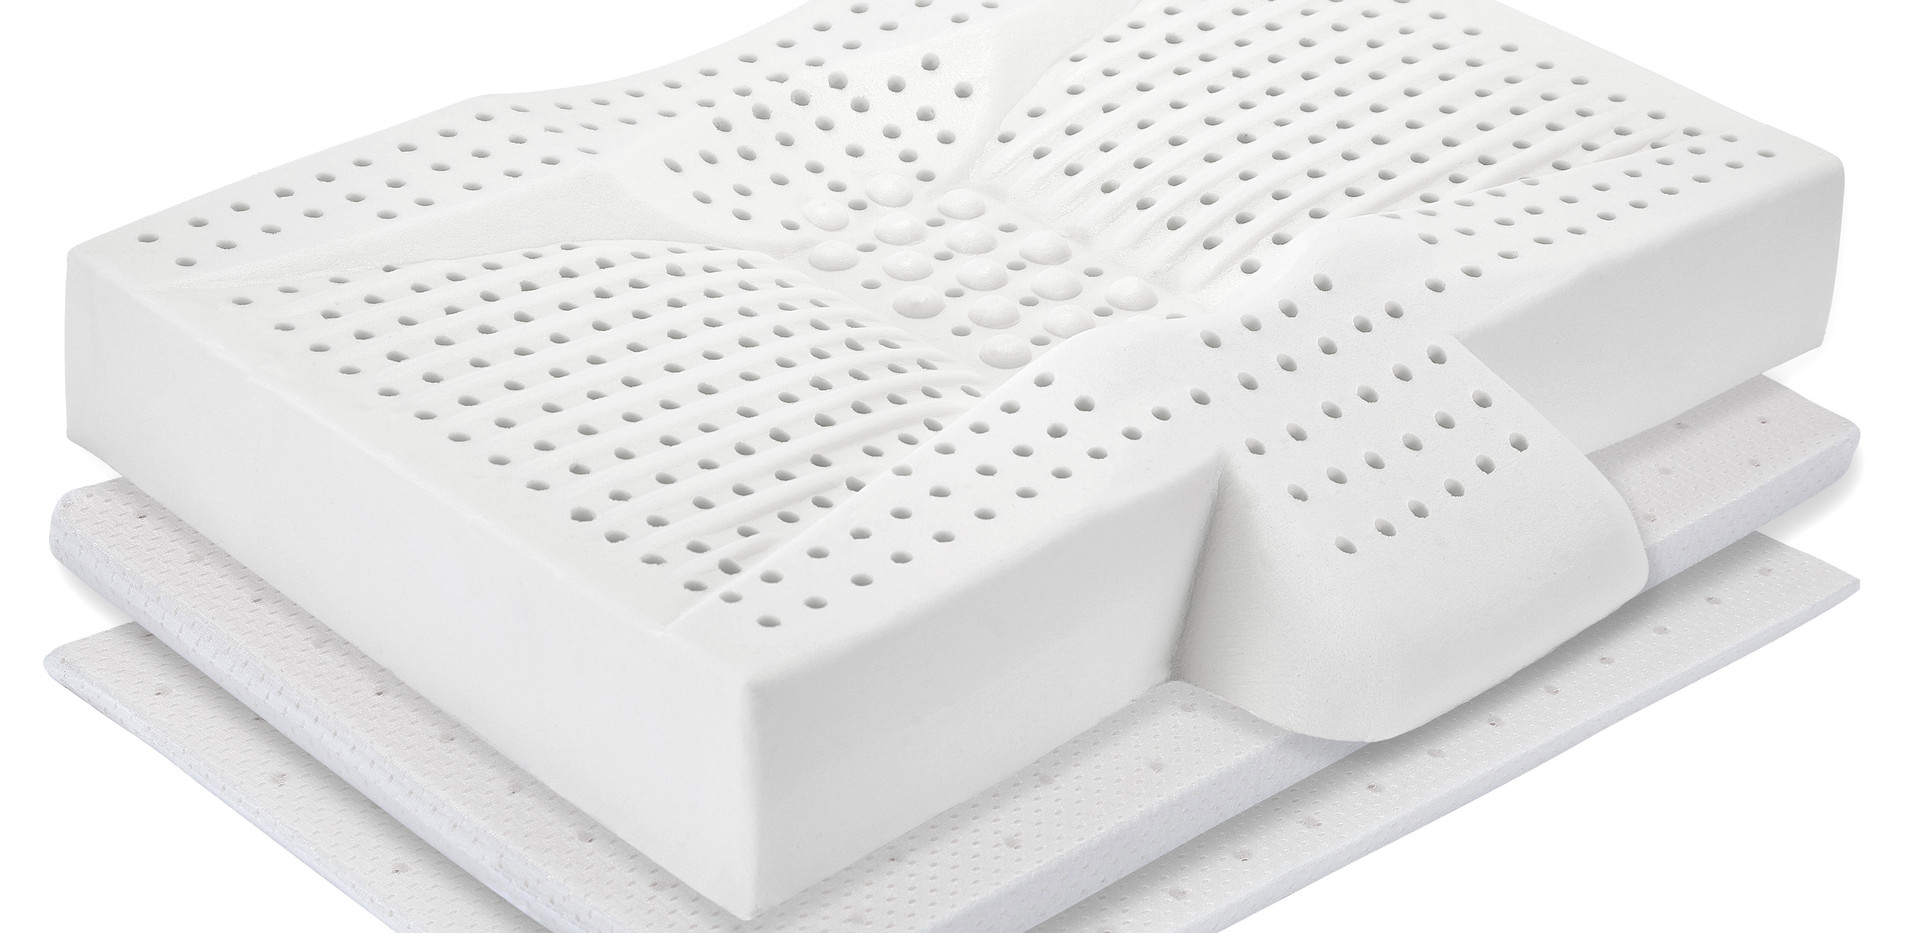 LumaLife Luxe Low Profile Orthopedic Pillow, Adjustable Height with Thinserts™